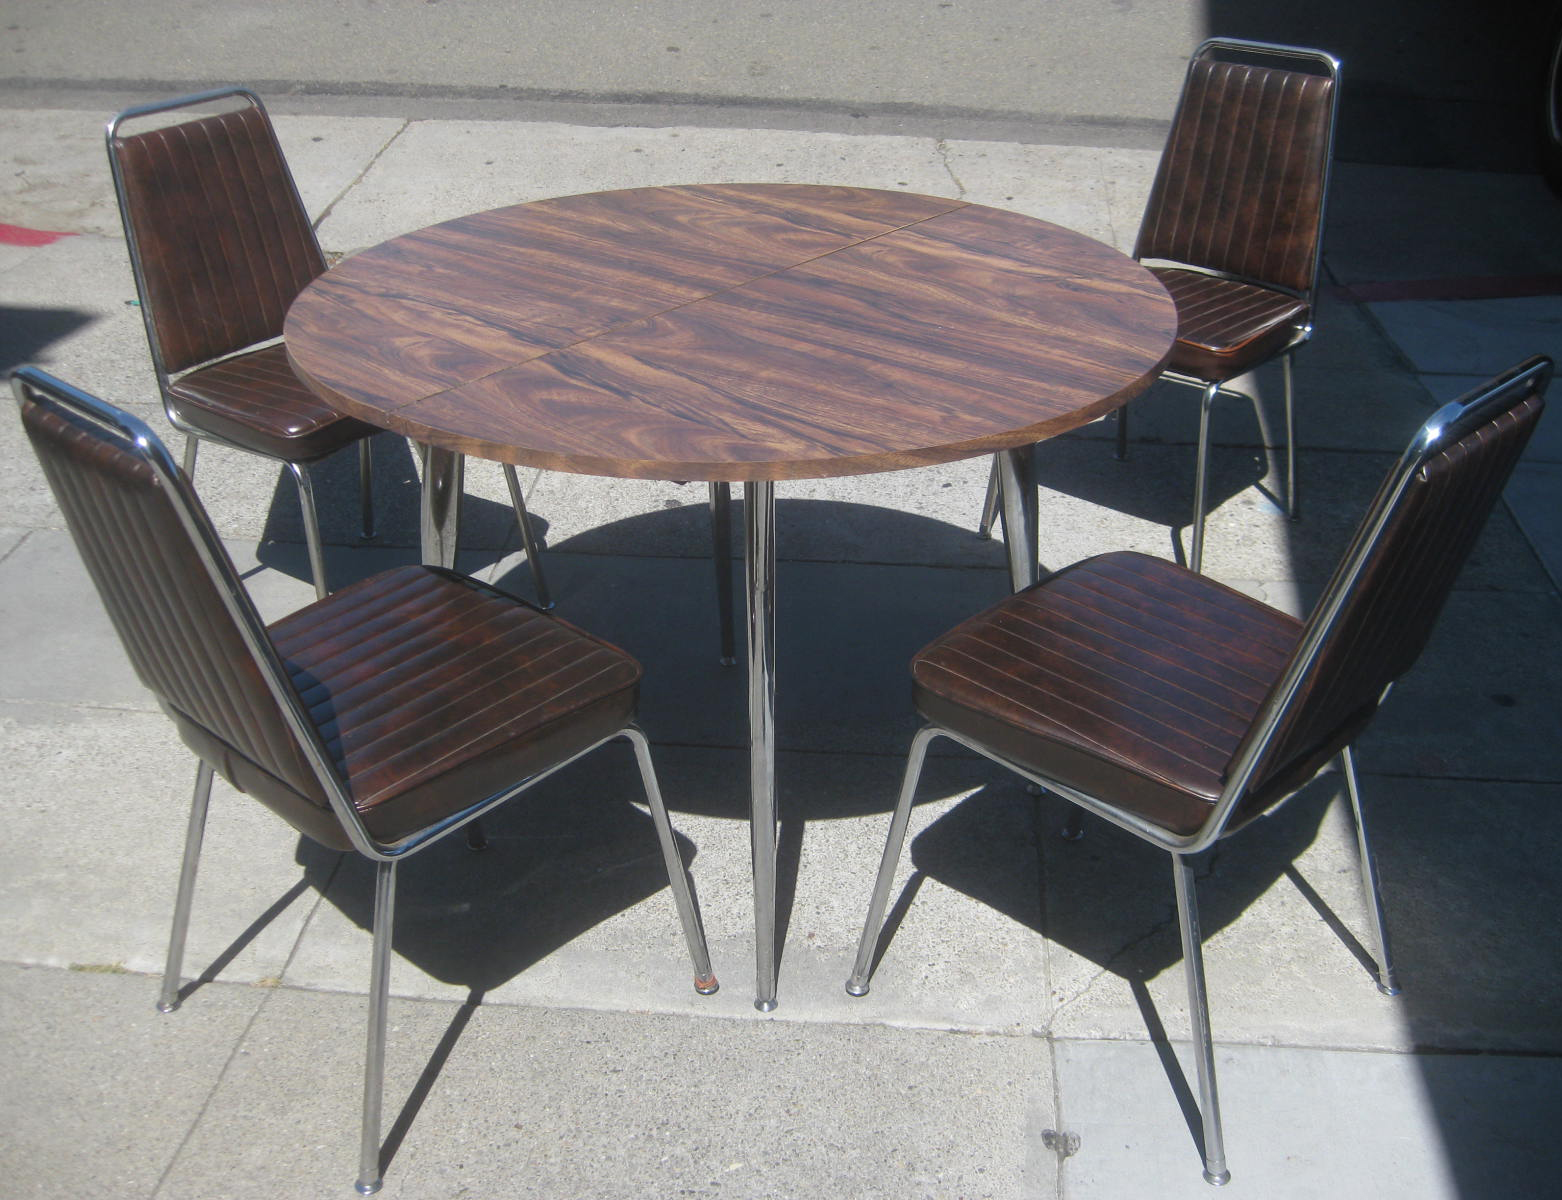 Uhuru furniture collectibles sold retro kitchen table Kitchen table and chairs